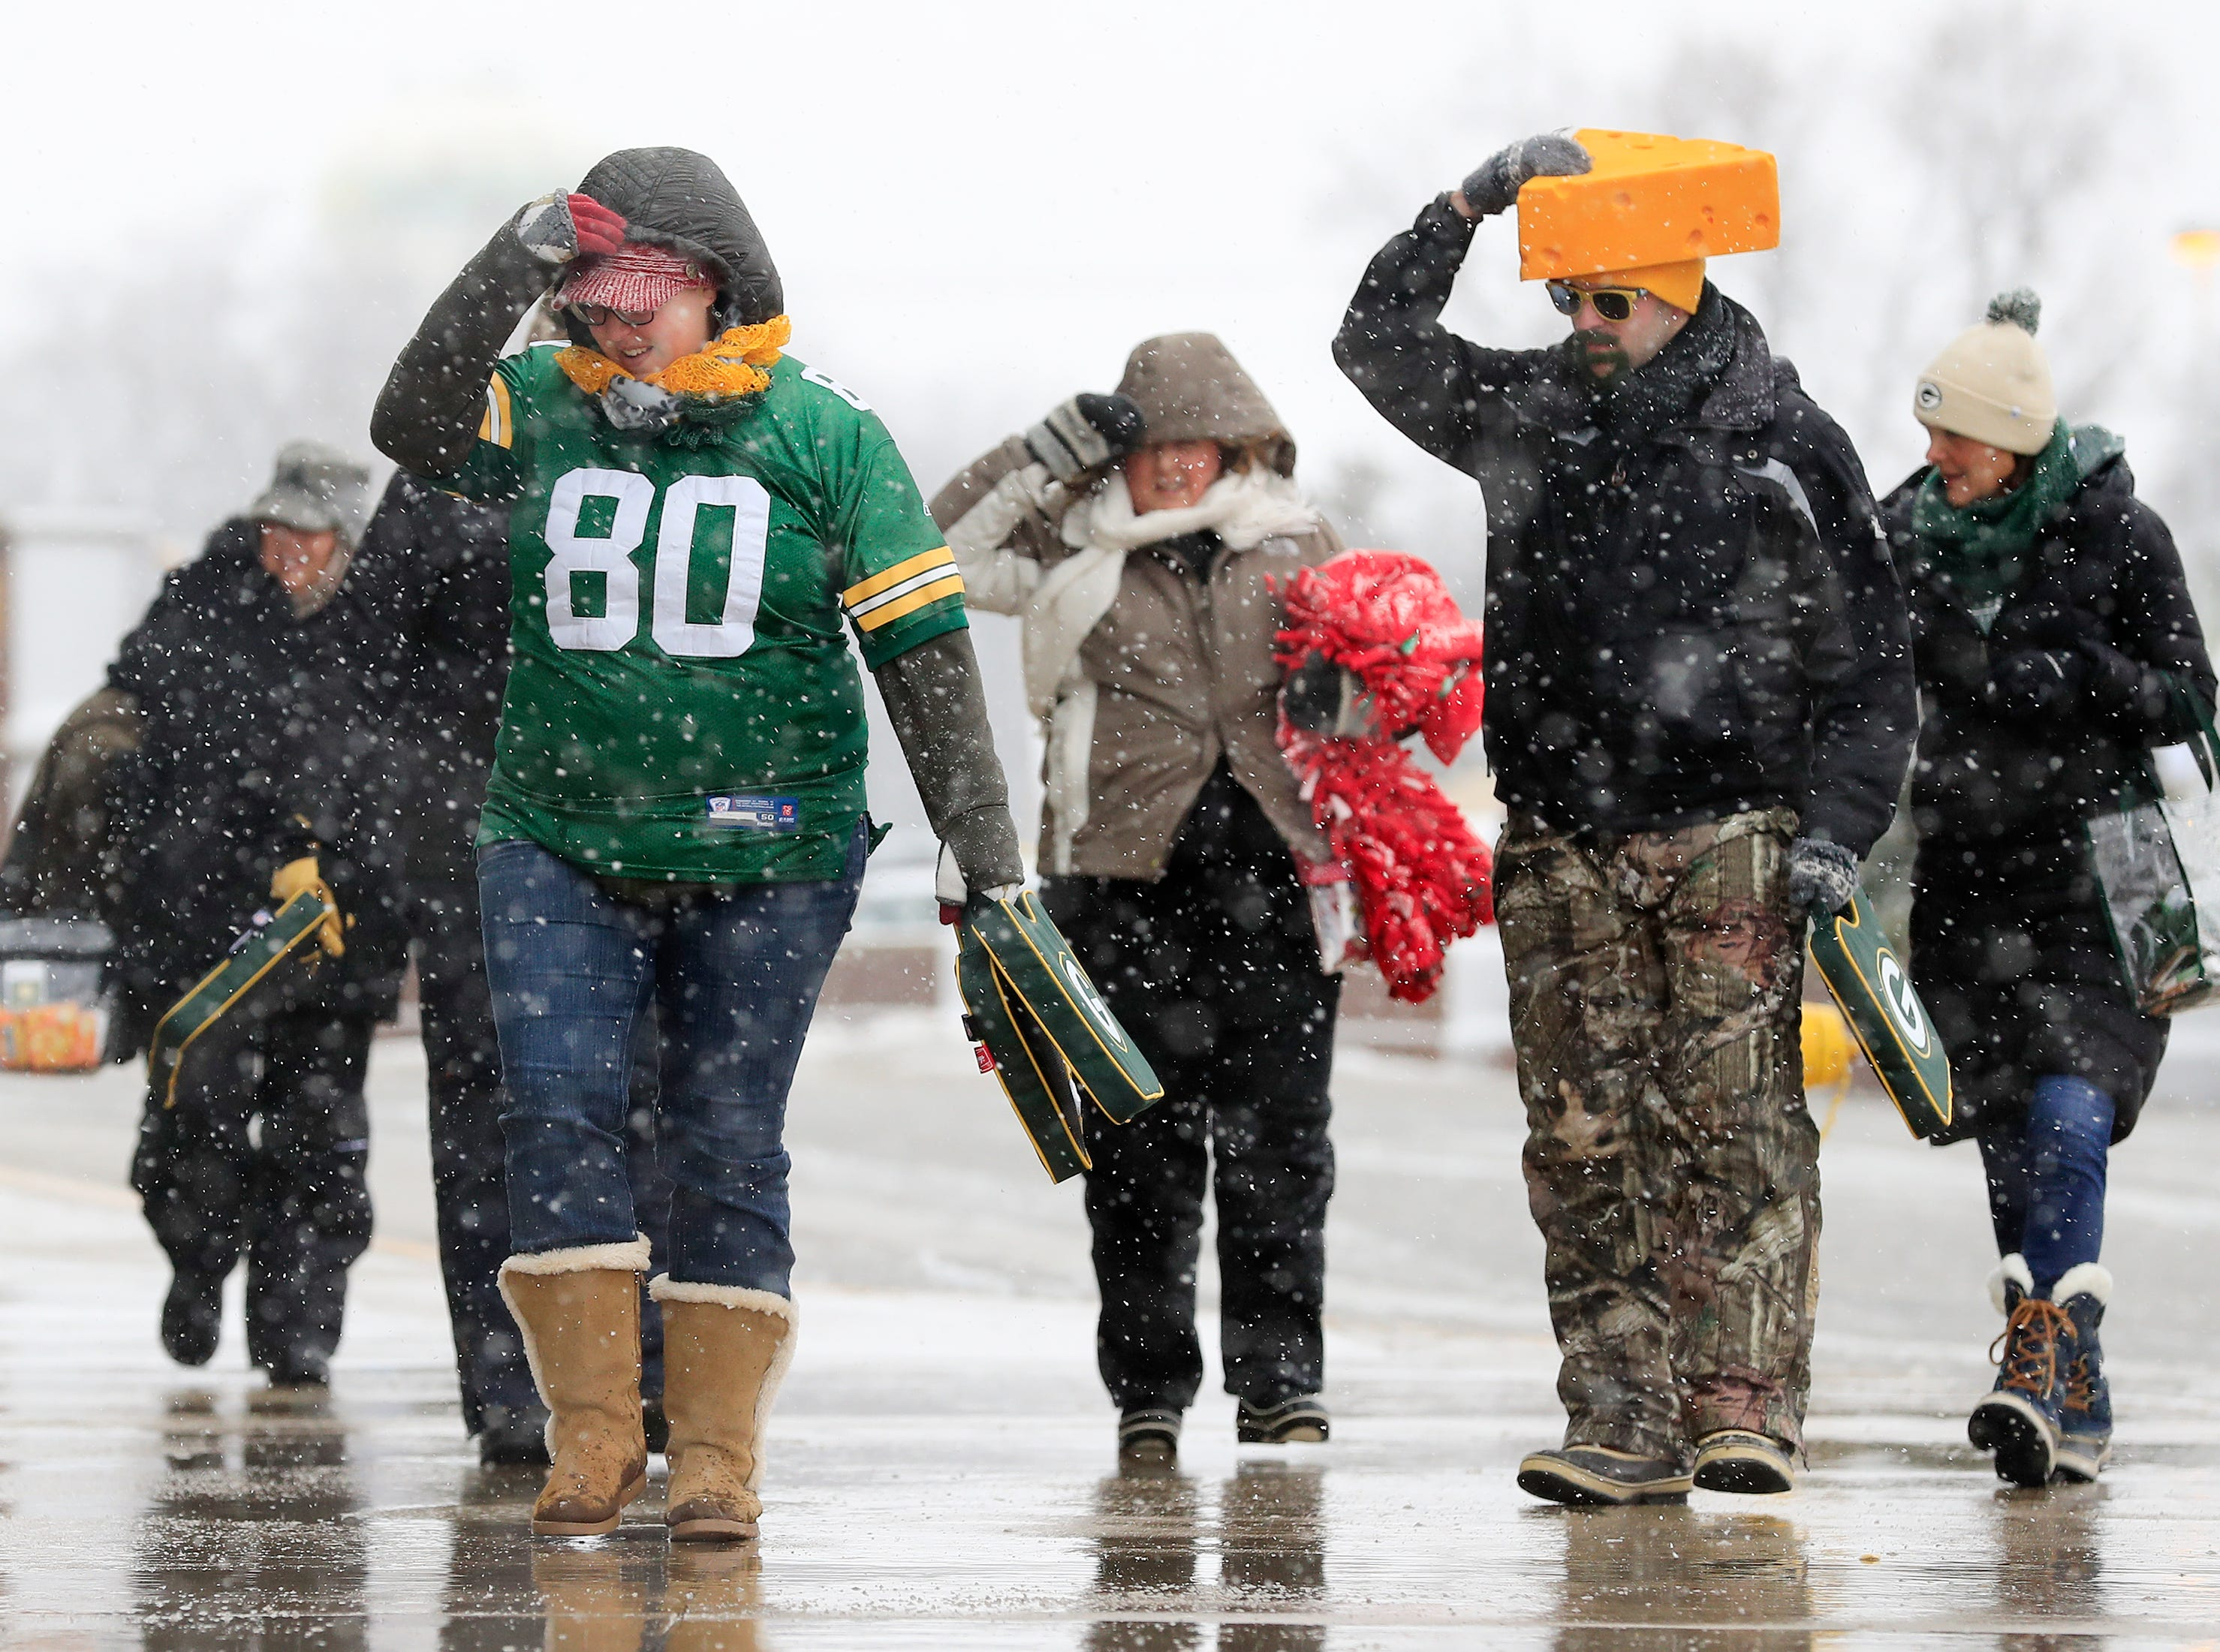 Fans arrive for the Green Bay Packers game against the Arizona Cardinals at Lambeau Field on Sunday, December 2, 2018 in Green Bay, Wis.